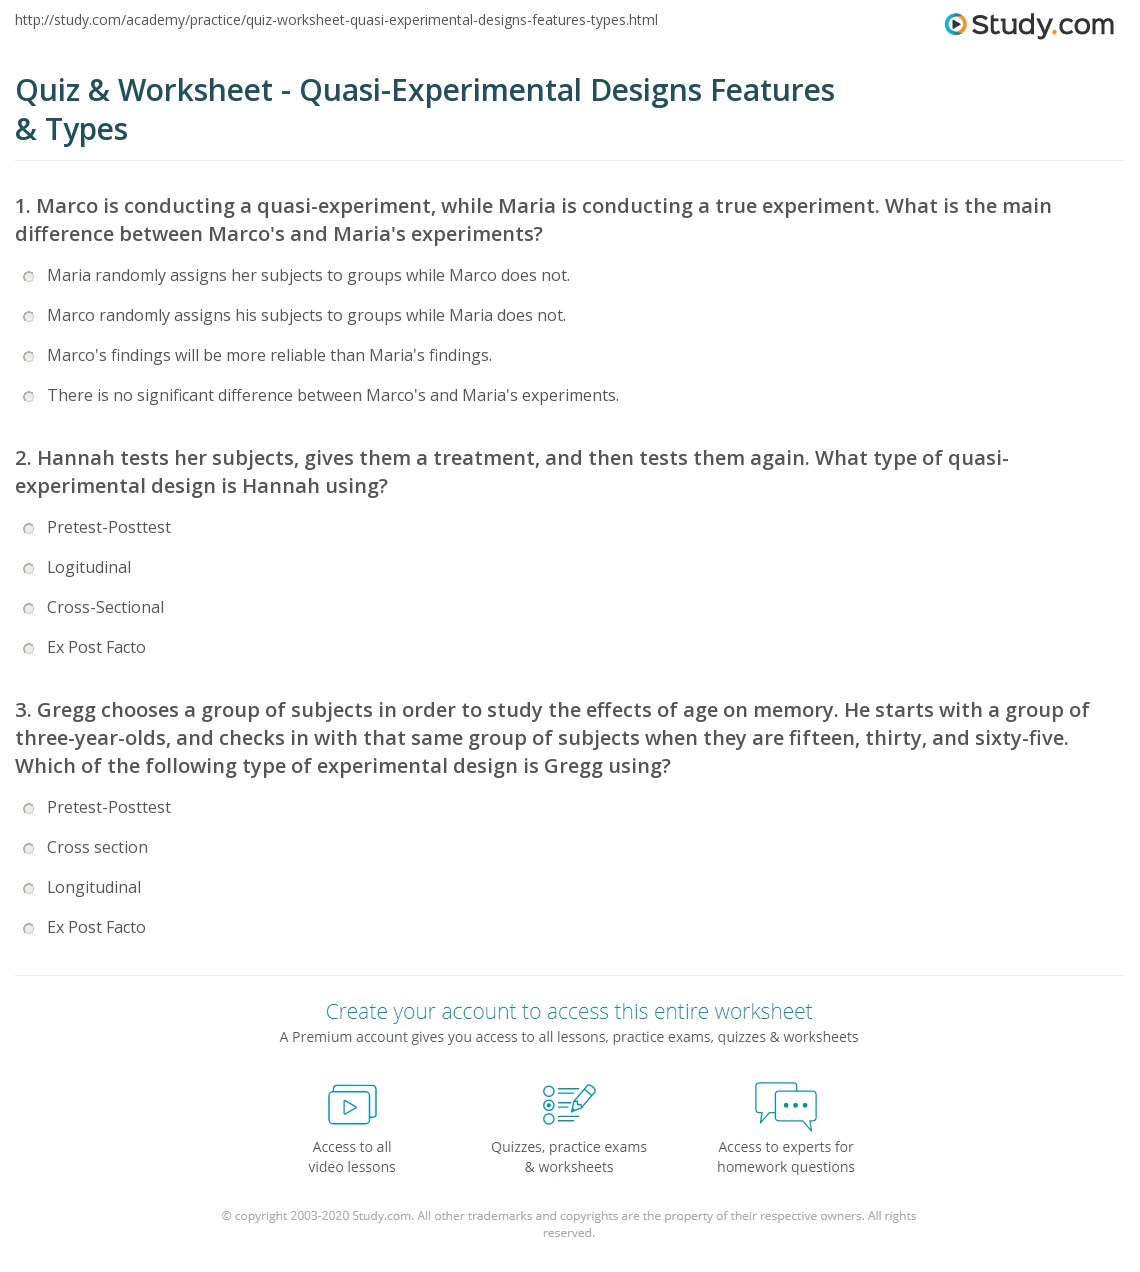 Quiz & Worksheet - Quasi-Experimental Designs Features & Types ...